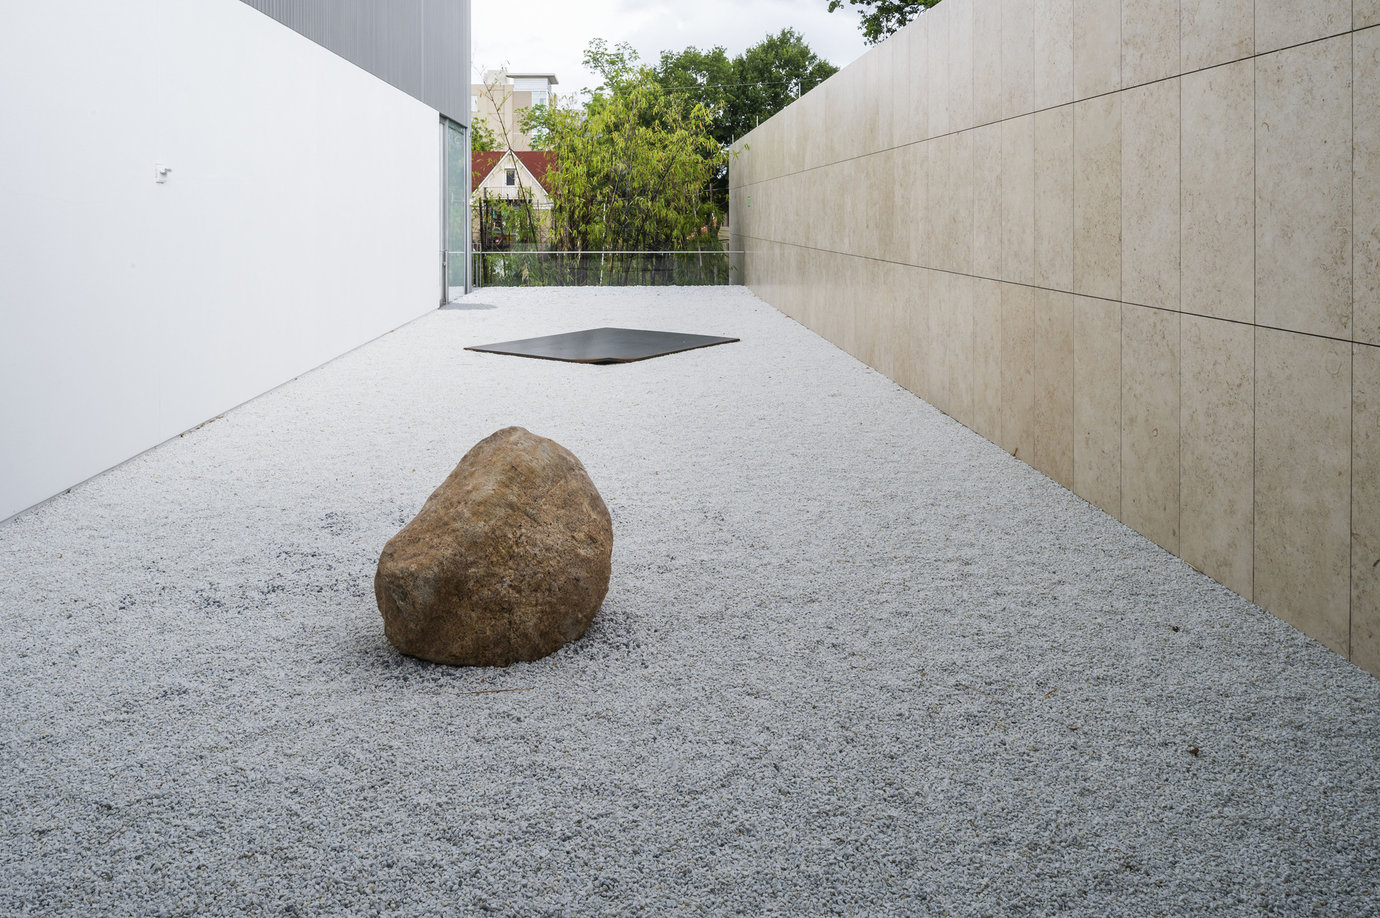 ", 2011. Steel plate and stone, overall installation dimensions variable&#x000A;1-1/4"" x 118-1/8"" x 94-1/2"" (3.2 cm x 300 cm x 240 cm), steel plate&#x000A;28"" x 49"" x 49"" (71.1 cm x 124.5 cm x 124.5 cm), stone."